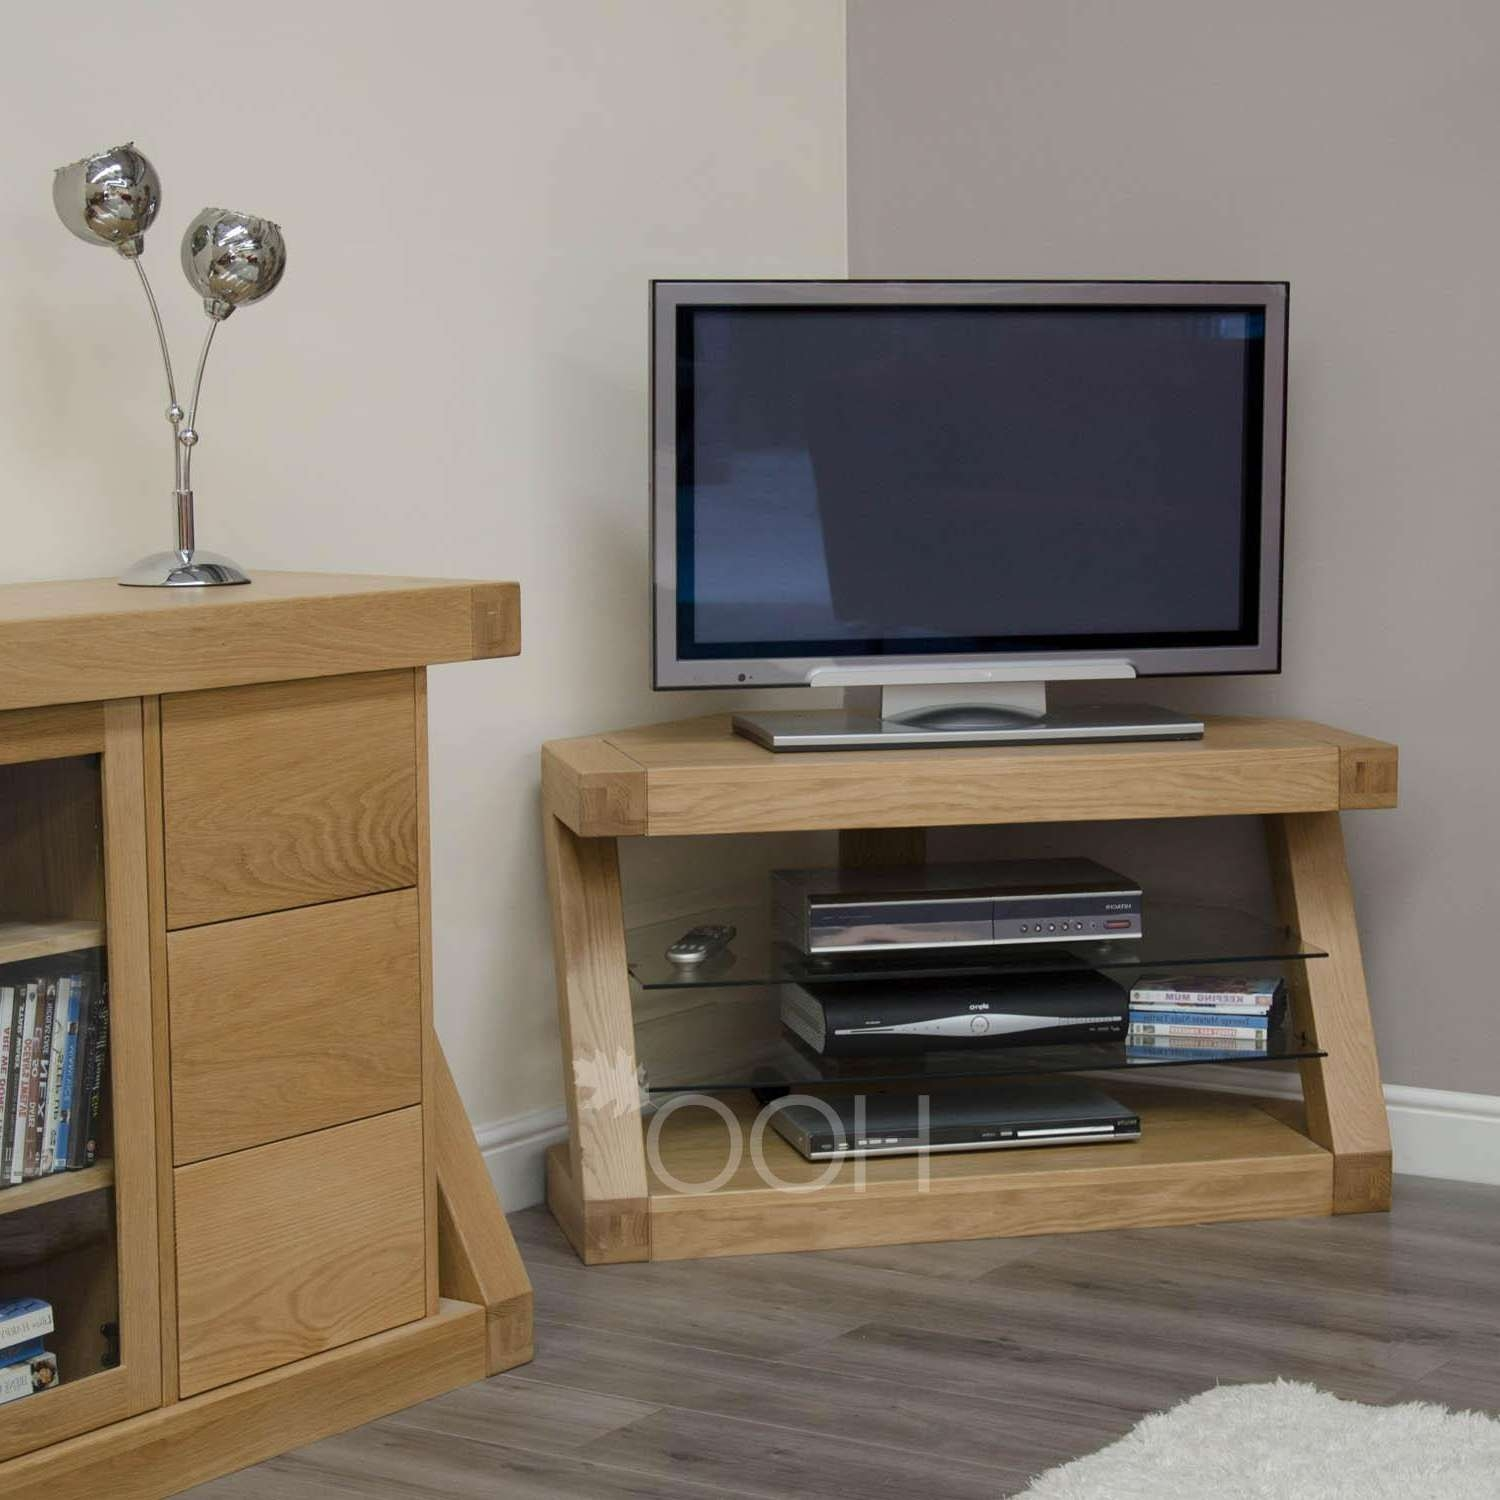 Tv Units – Oak Living Room Furniture – Oak Furniturehouse Of Oak Inside Small Oak Tv Cabinets (View 11 of 20)